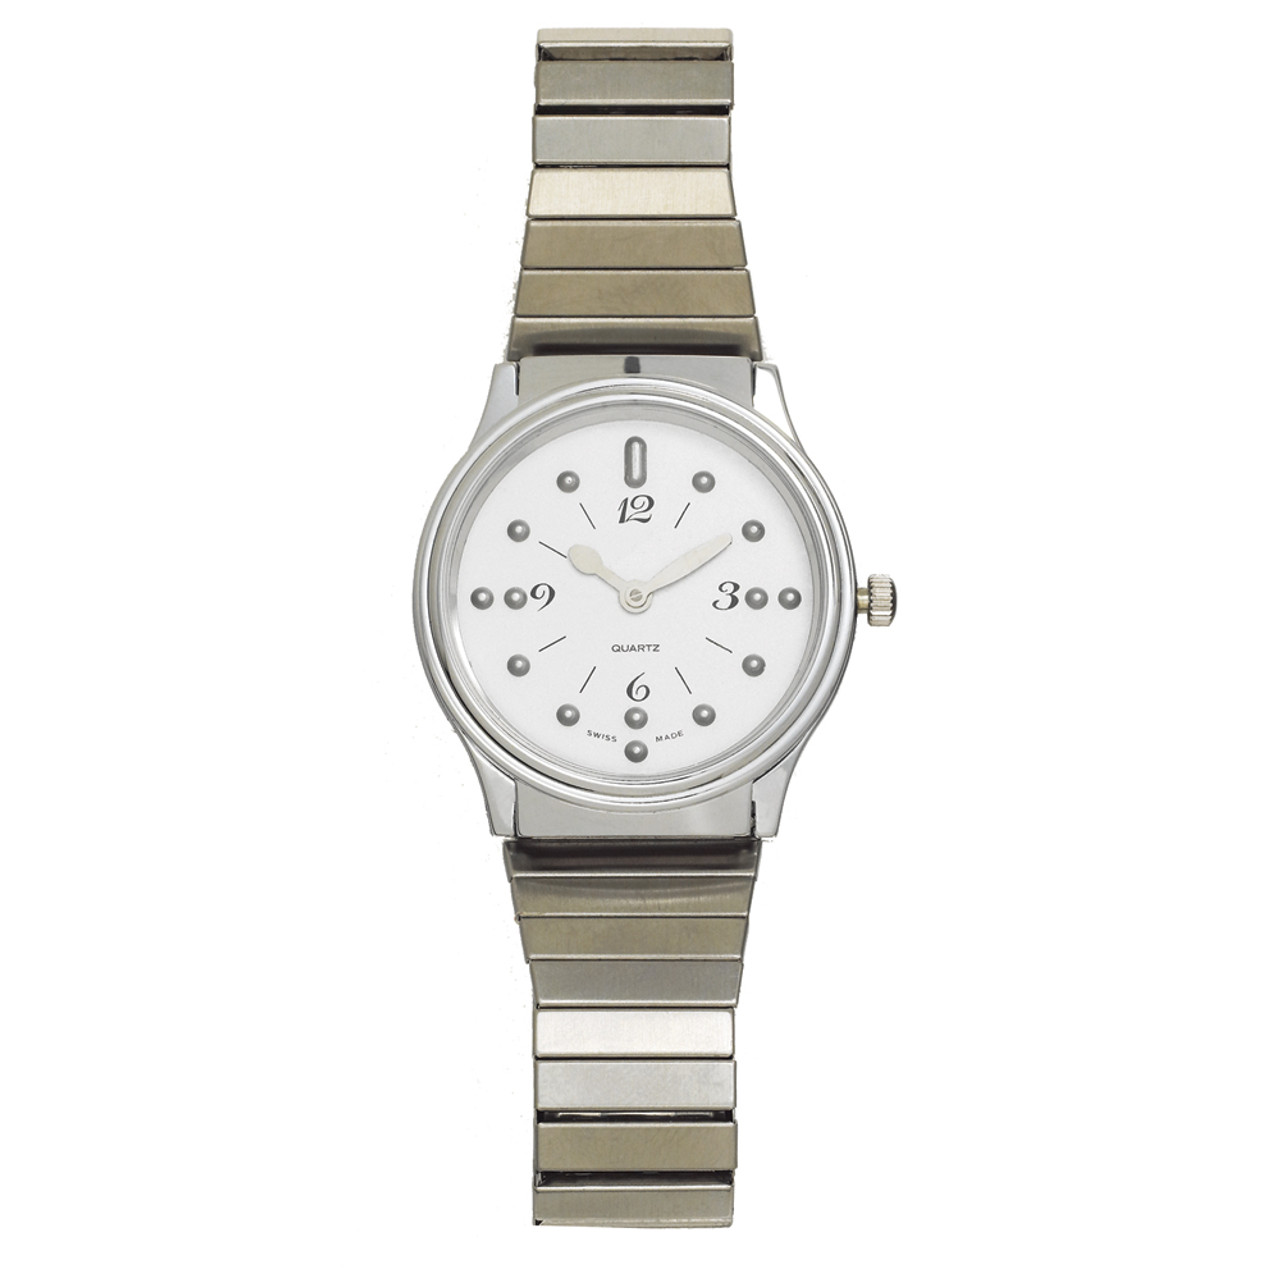 Men's Montiel Braille Watch Silver face, chrome case, expansion band